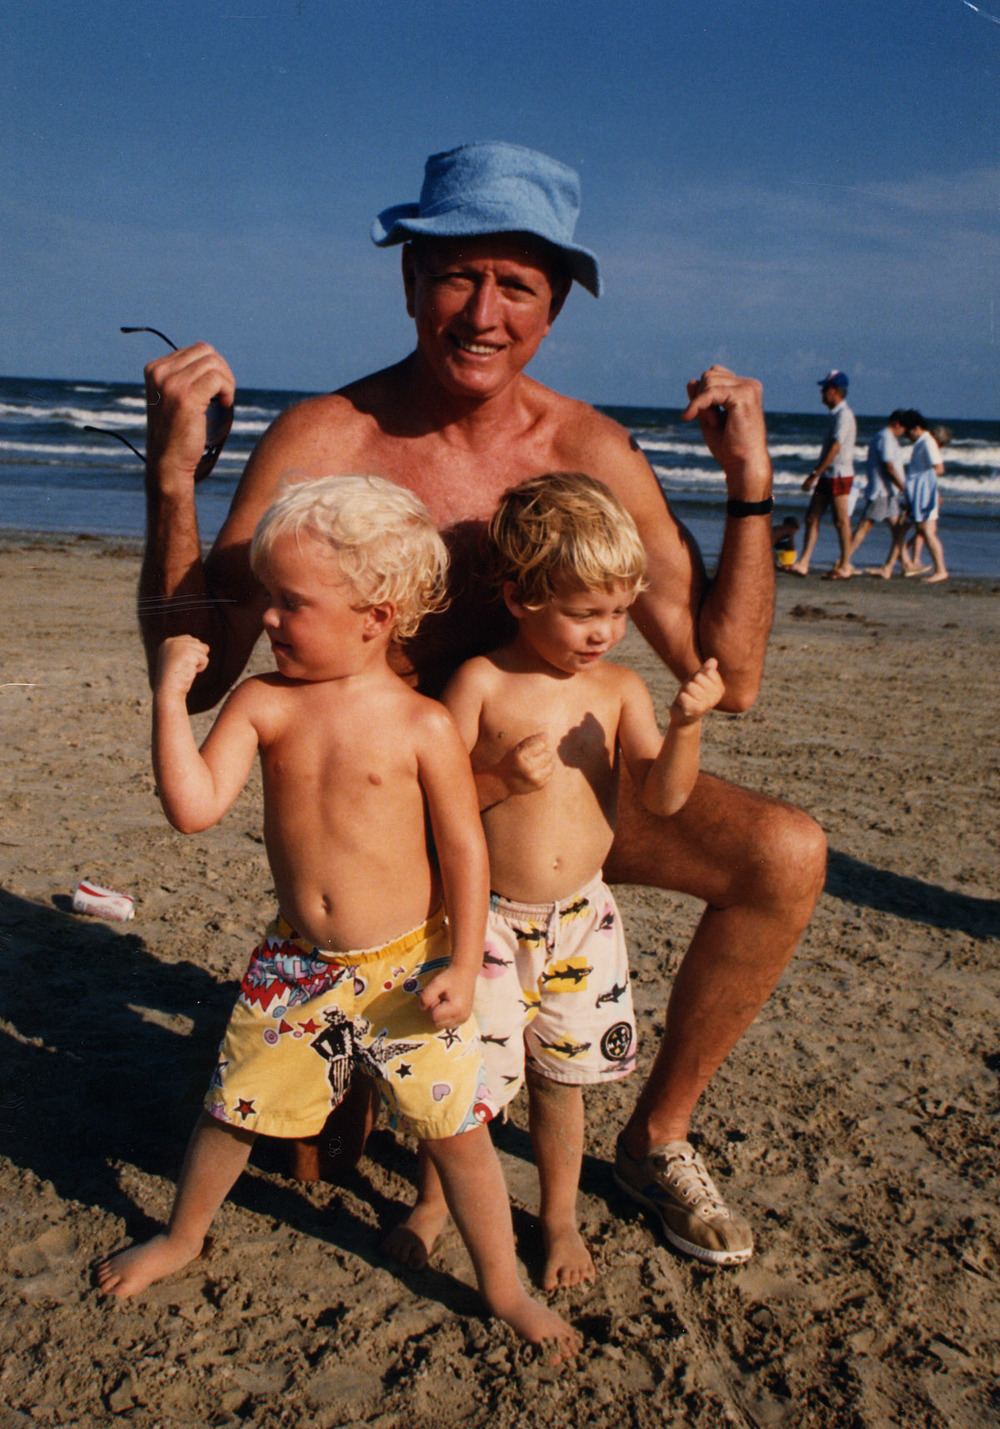 Dr. Cooley with grandsons John Plumb and William Walker on 'Muscle Beach' during a weekend at his Galveston beach house, the 'Cooley Bunkport' in the mid-1980s.